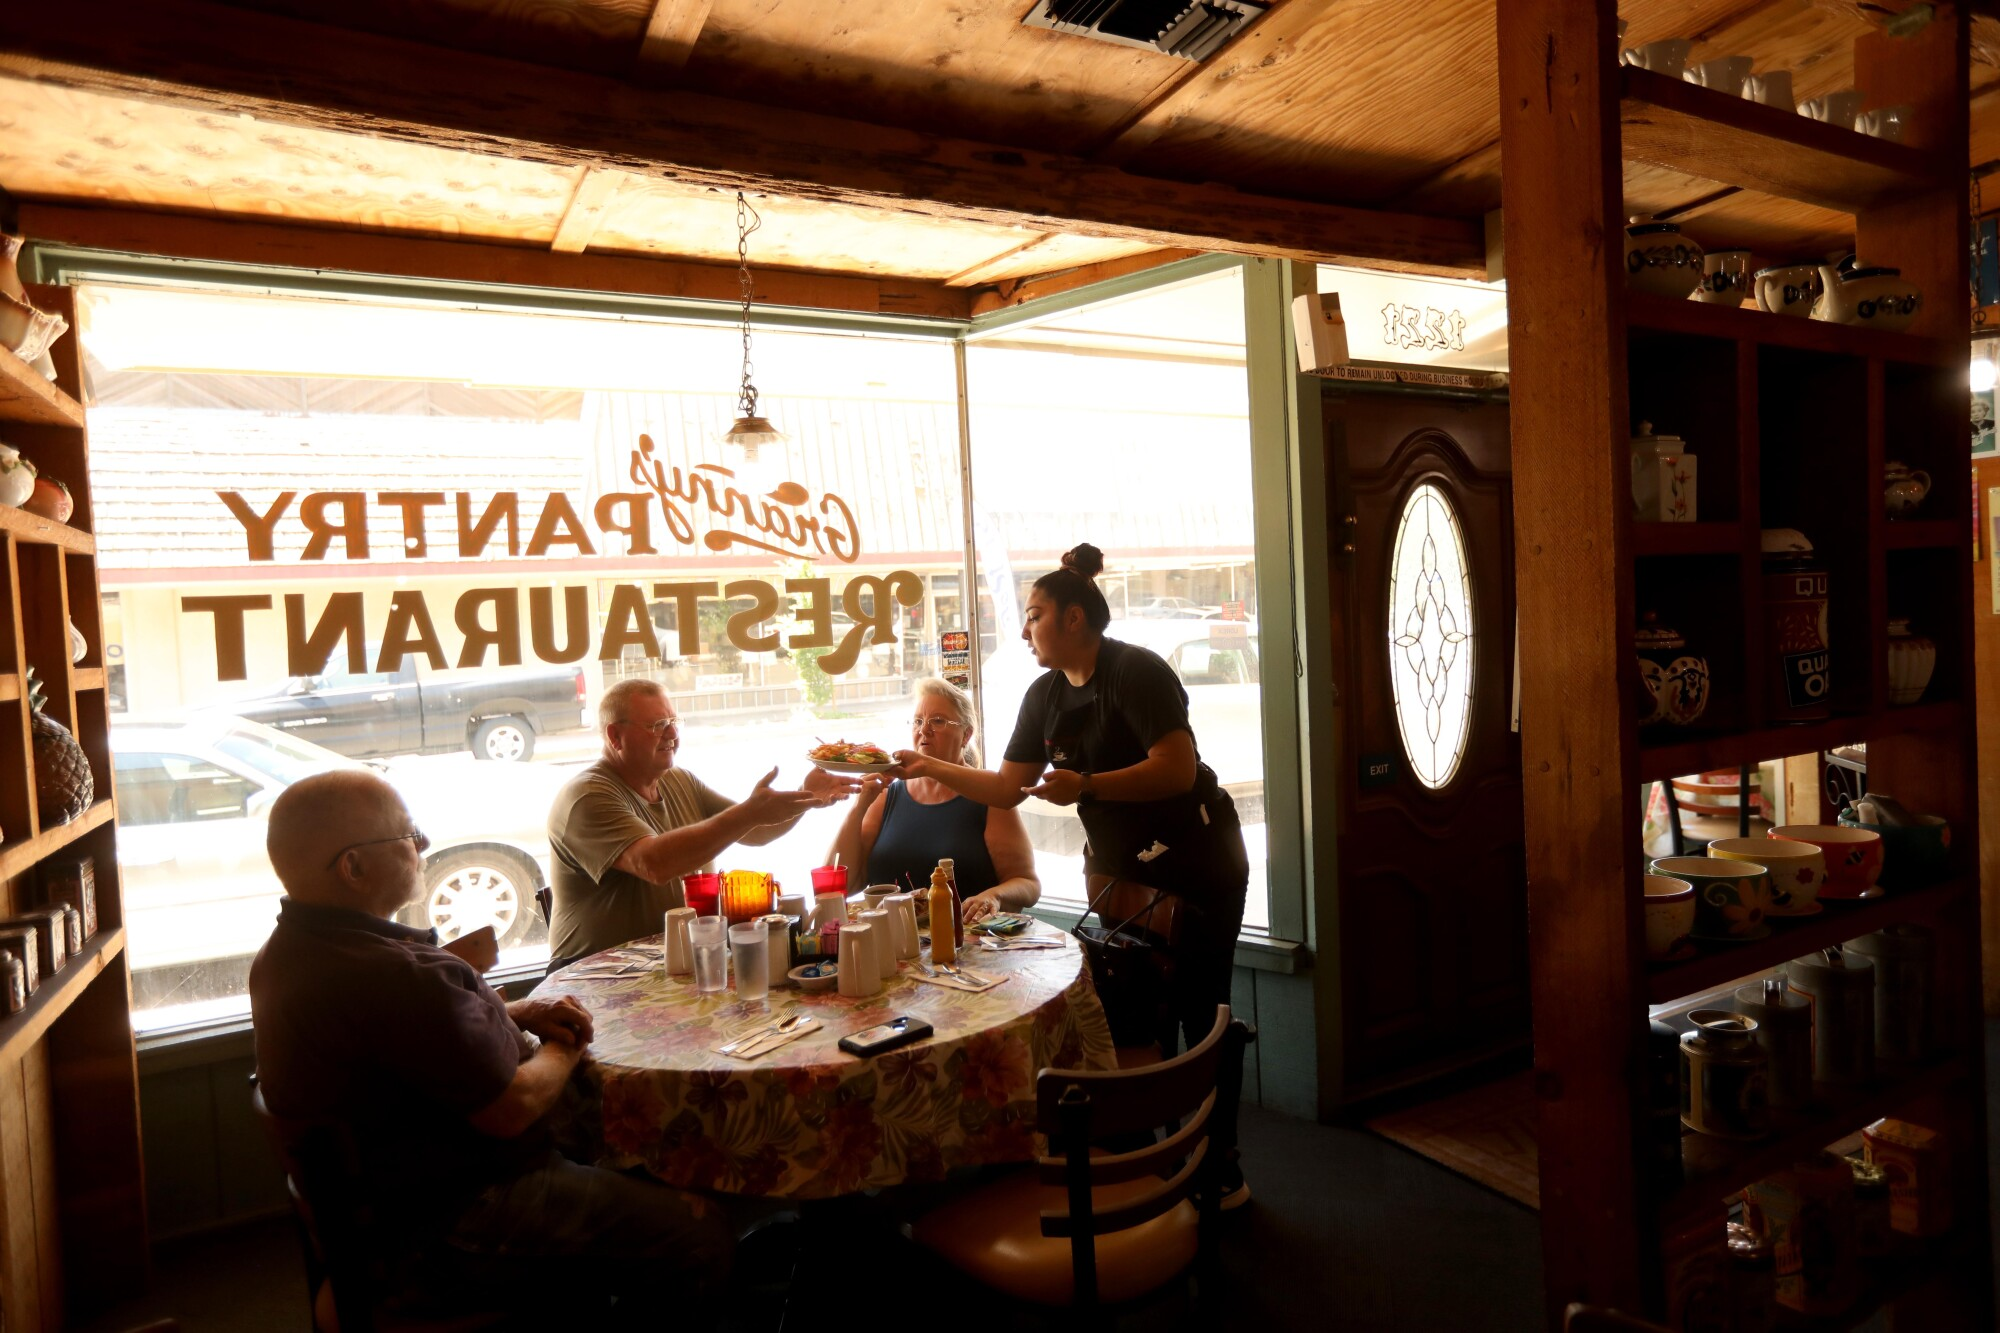 Granny's Pantry Restaurant reopens to the public in Atwater.